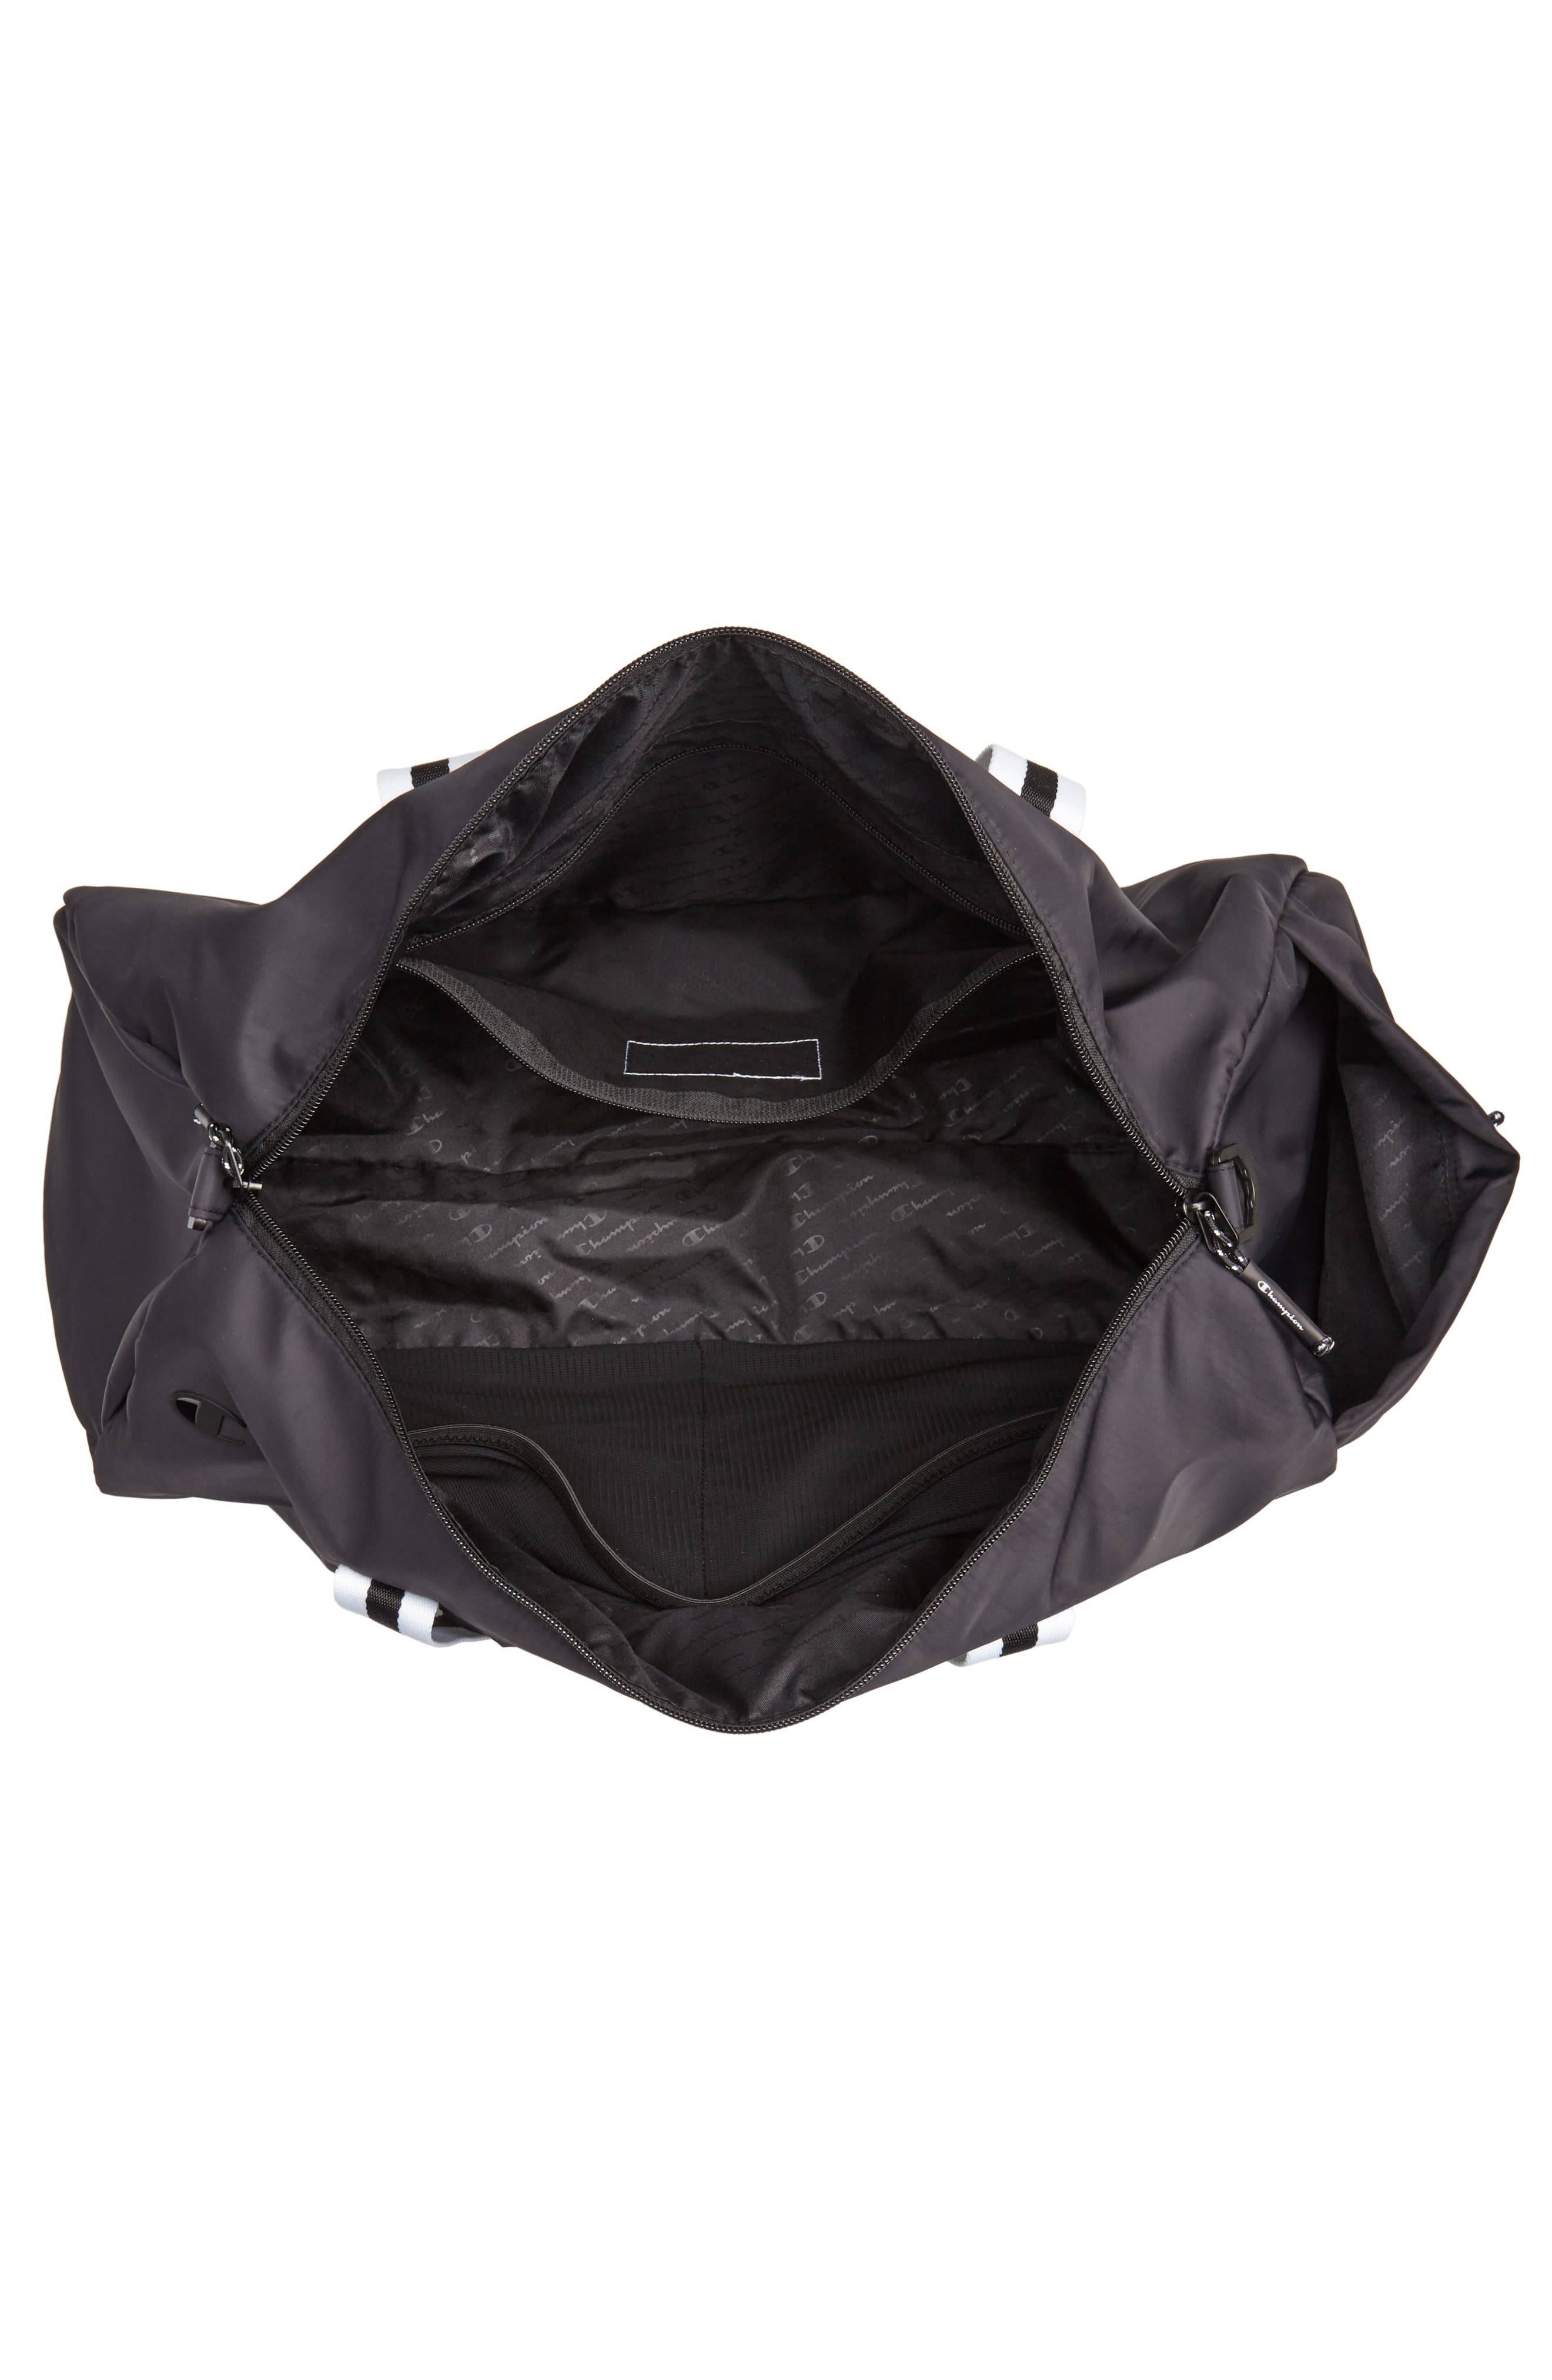 Free Form Duffel Bag,                             Alternate thumbnail 4, color,                             BLACK